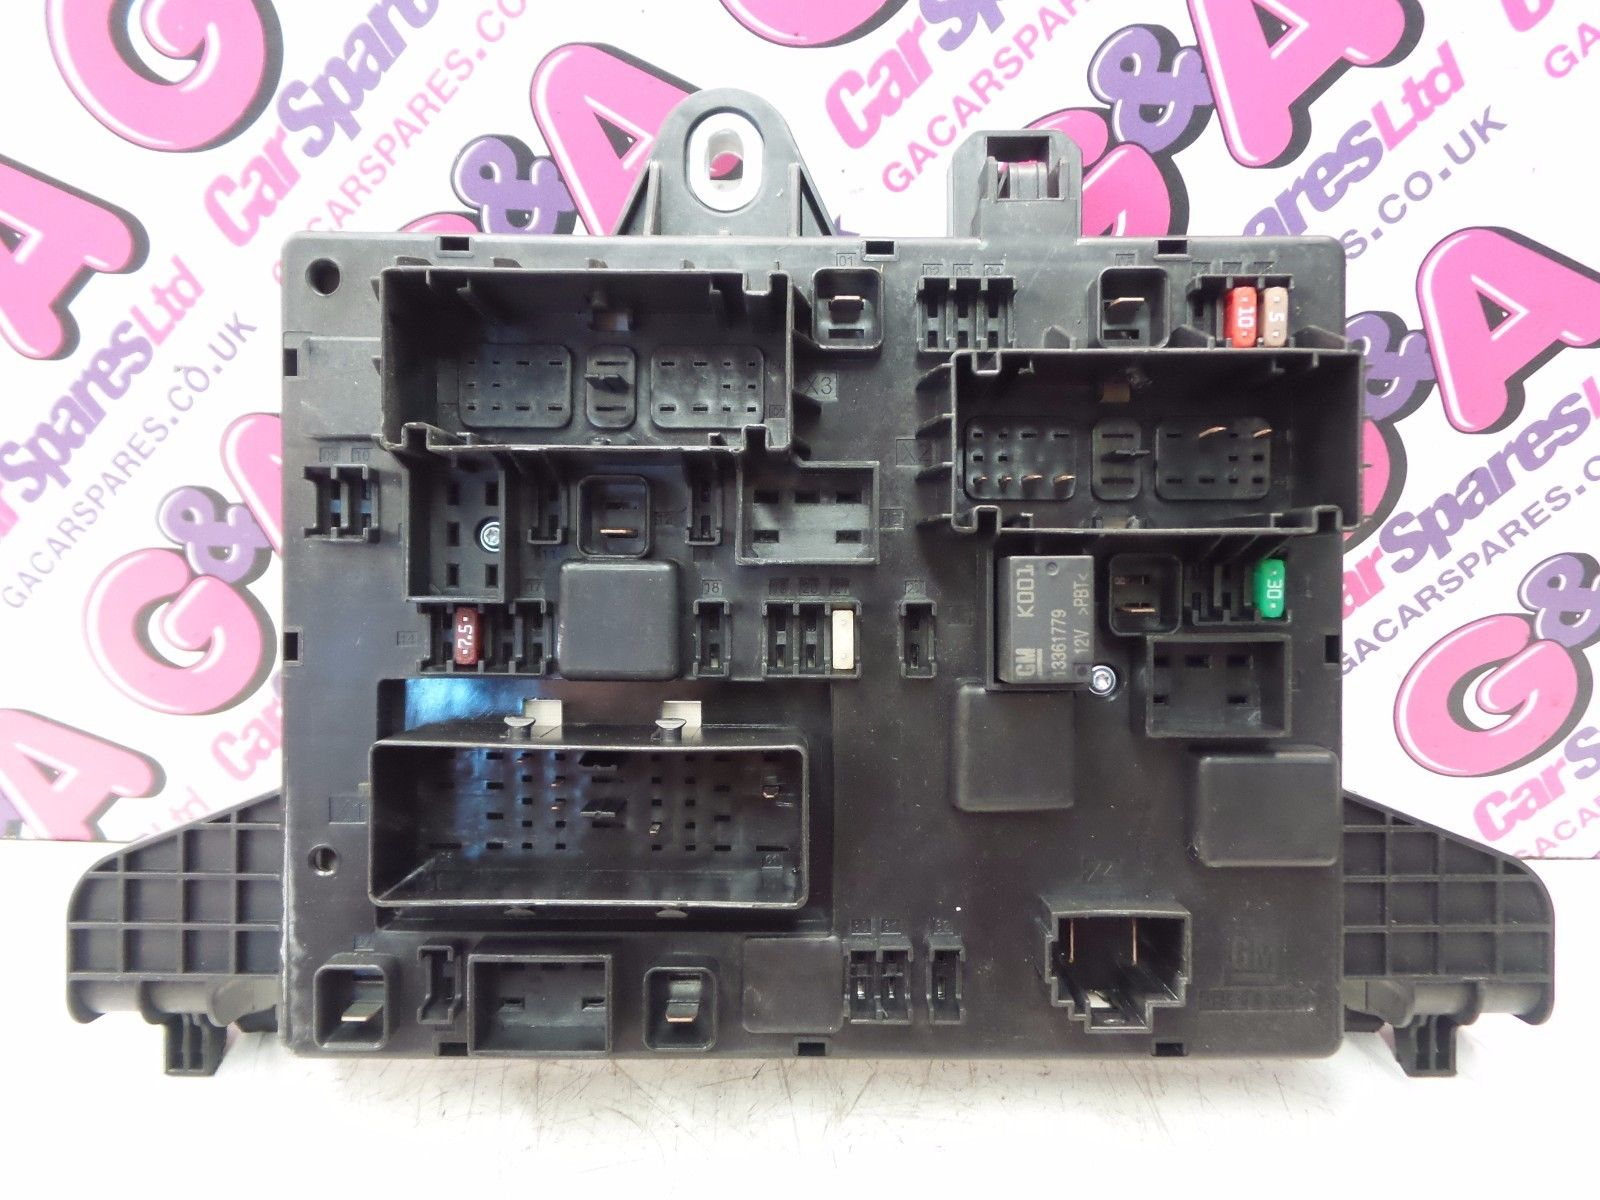 hight resolution of vauxhall astra gtc 1 6 16v petrol turbo rear fuse board fuse box 2011 2015